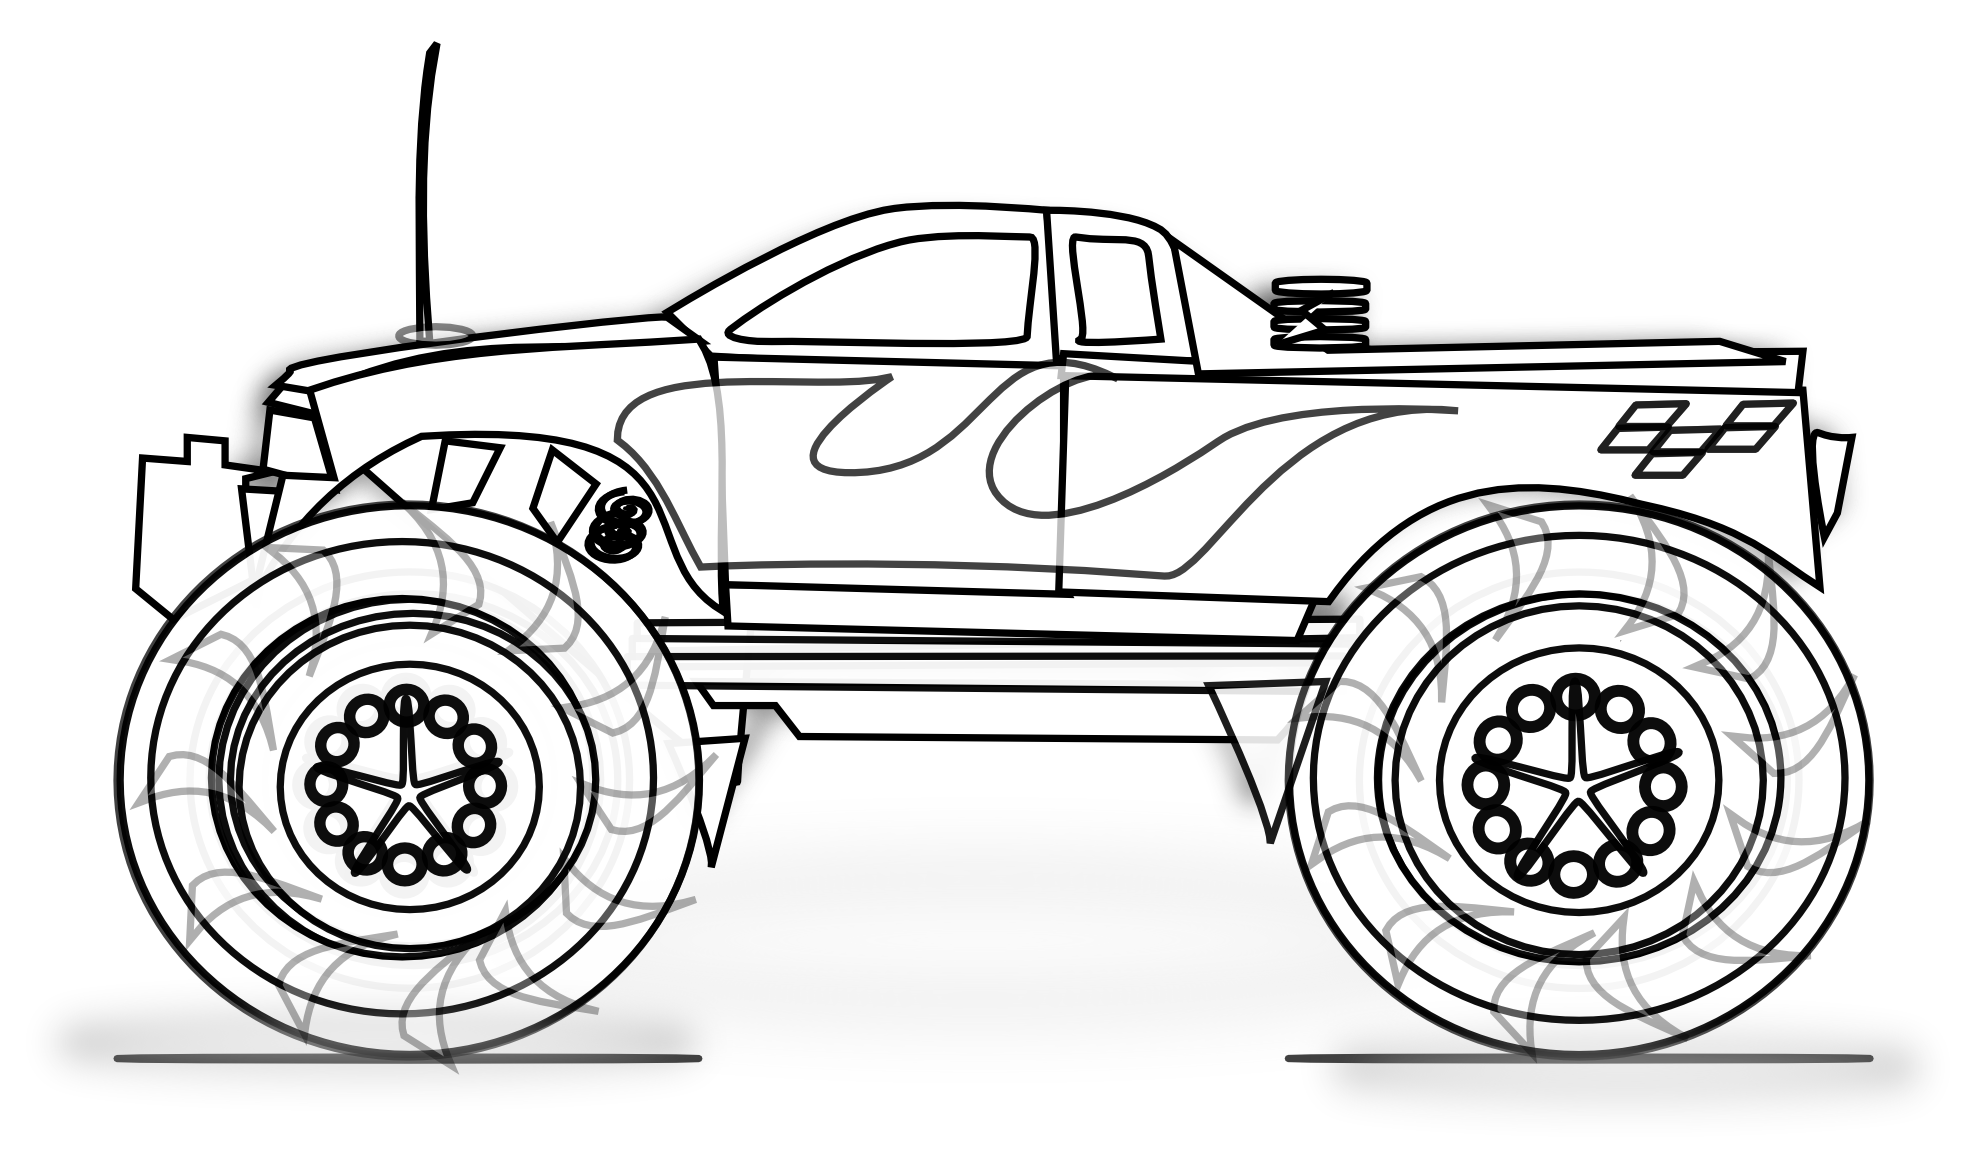 Adult Top Monster Truck Coloring Pages To Print Images top free printable monster truck coloring pages for kids images